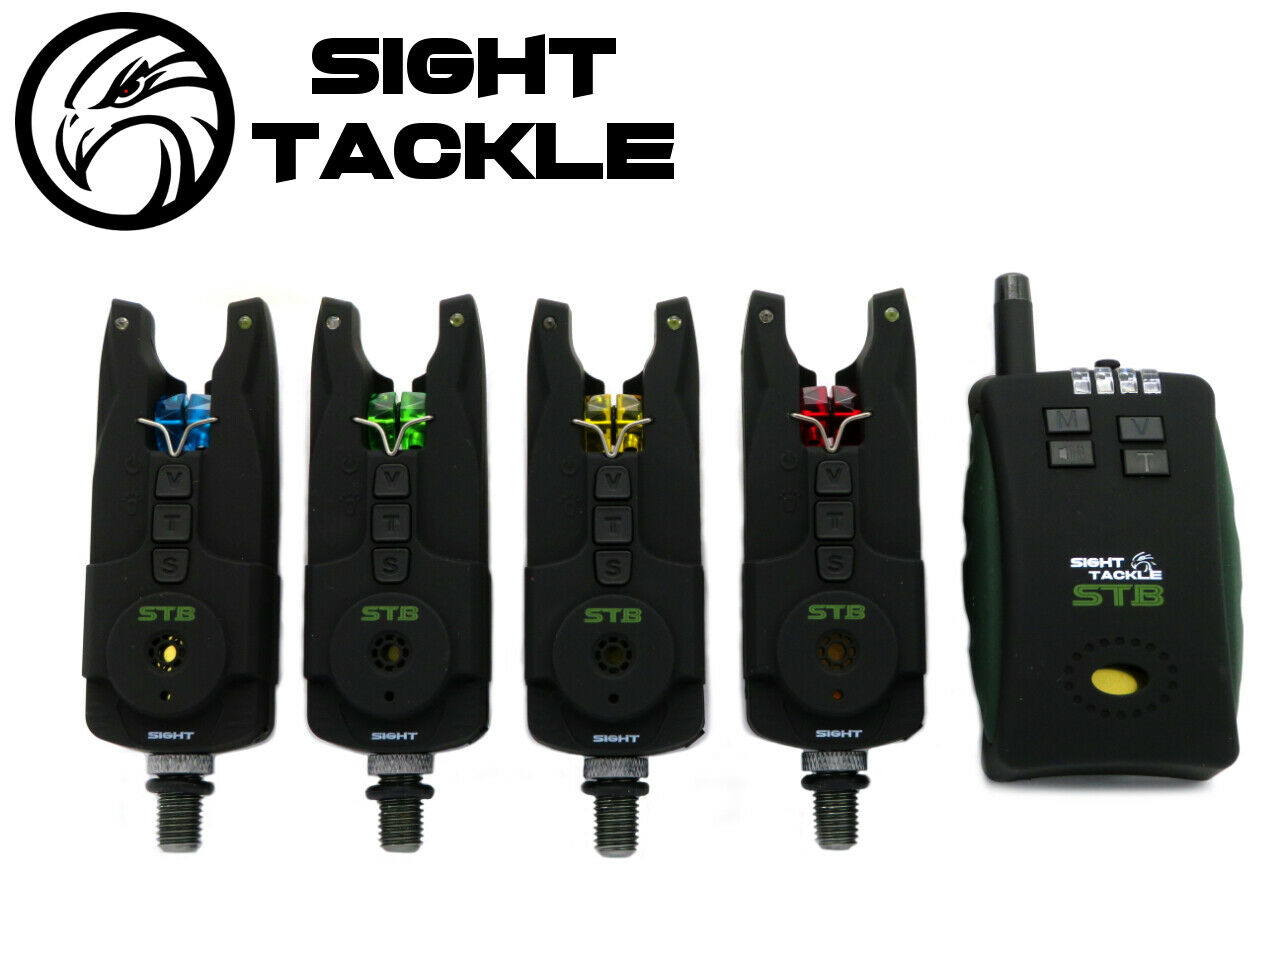 Sight Tackle STB Bite Alarm 4+1 Set NEW